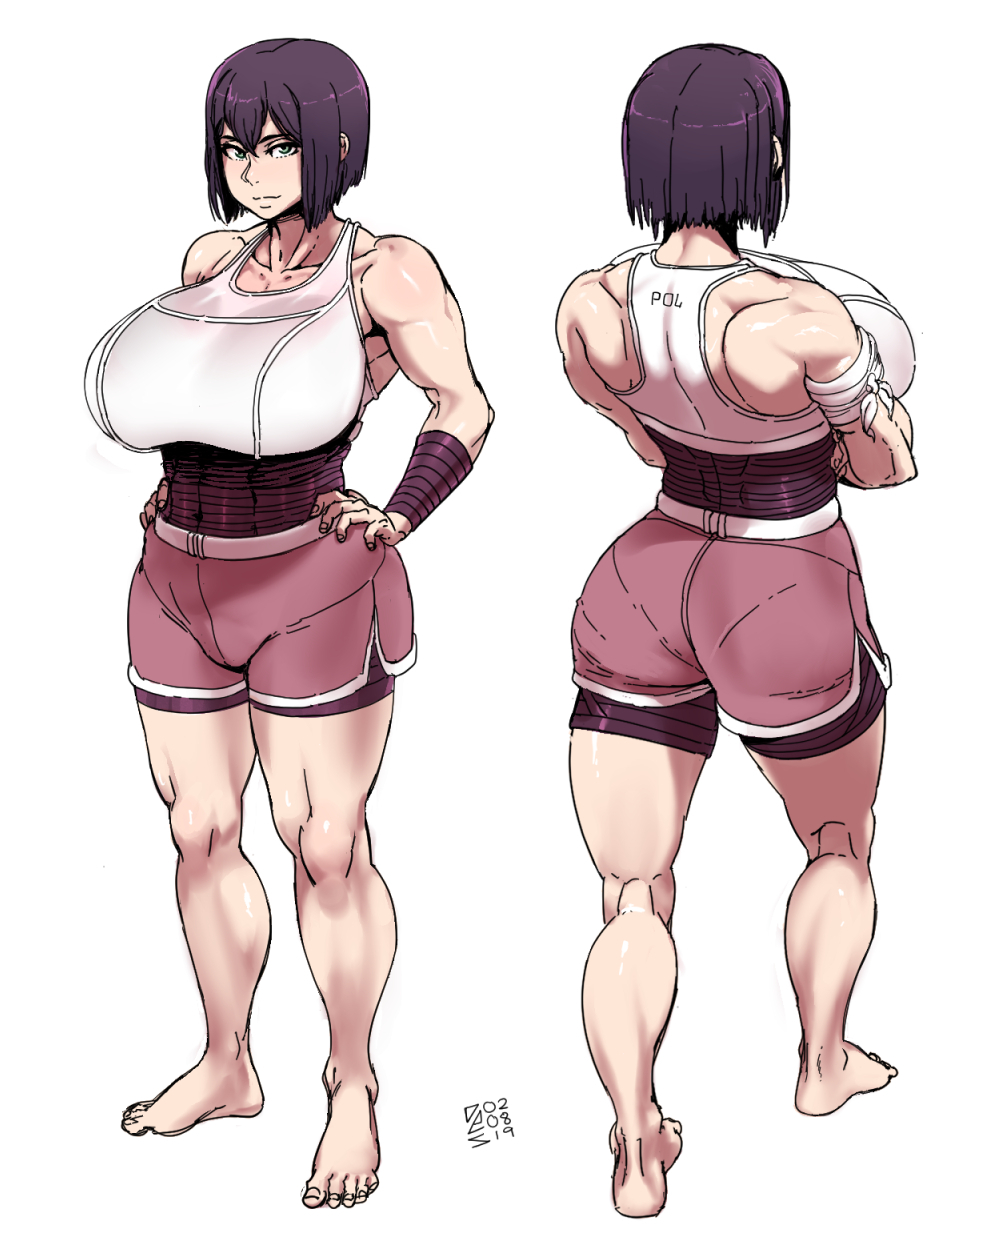 Riennas' sparring outfit